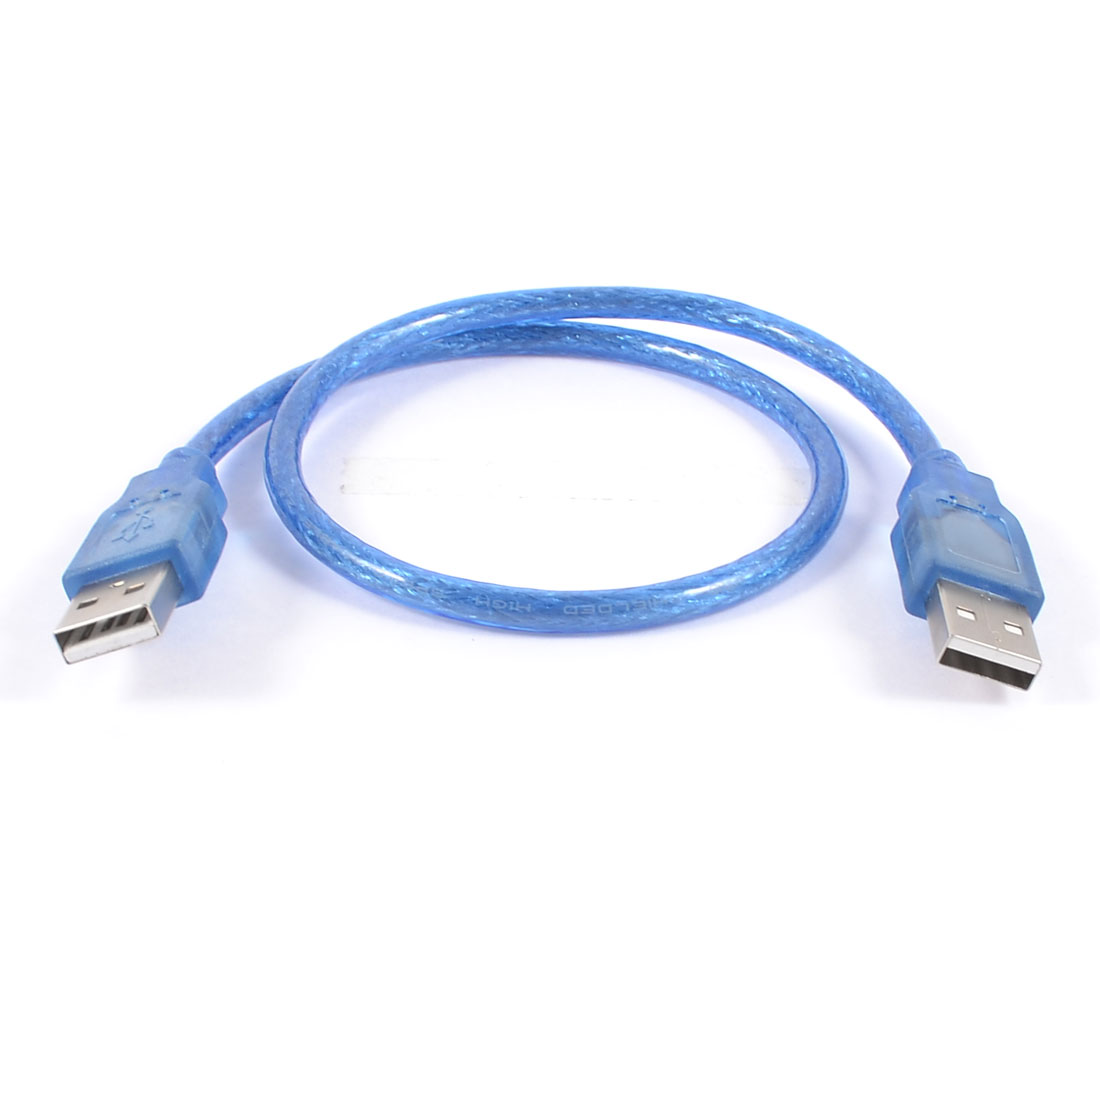 Blue Plastic Housing USB 2.0 Male to Male M/M Extension Cable Cord 50cm